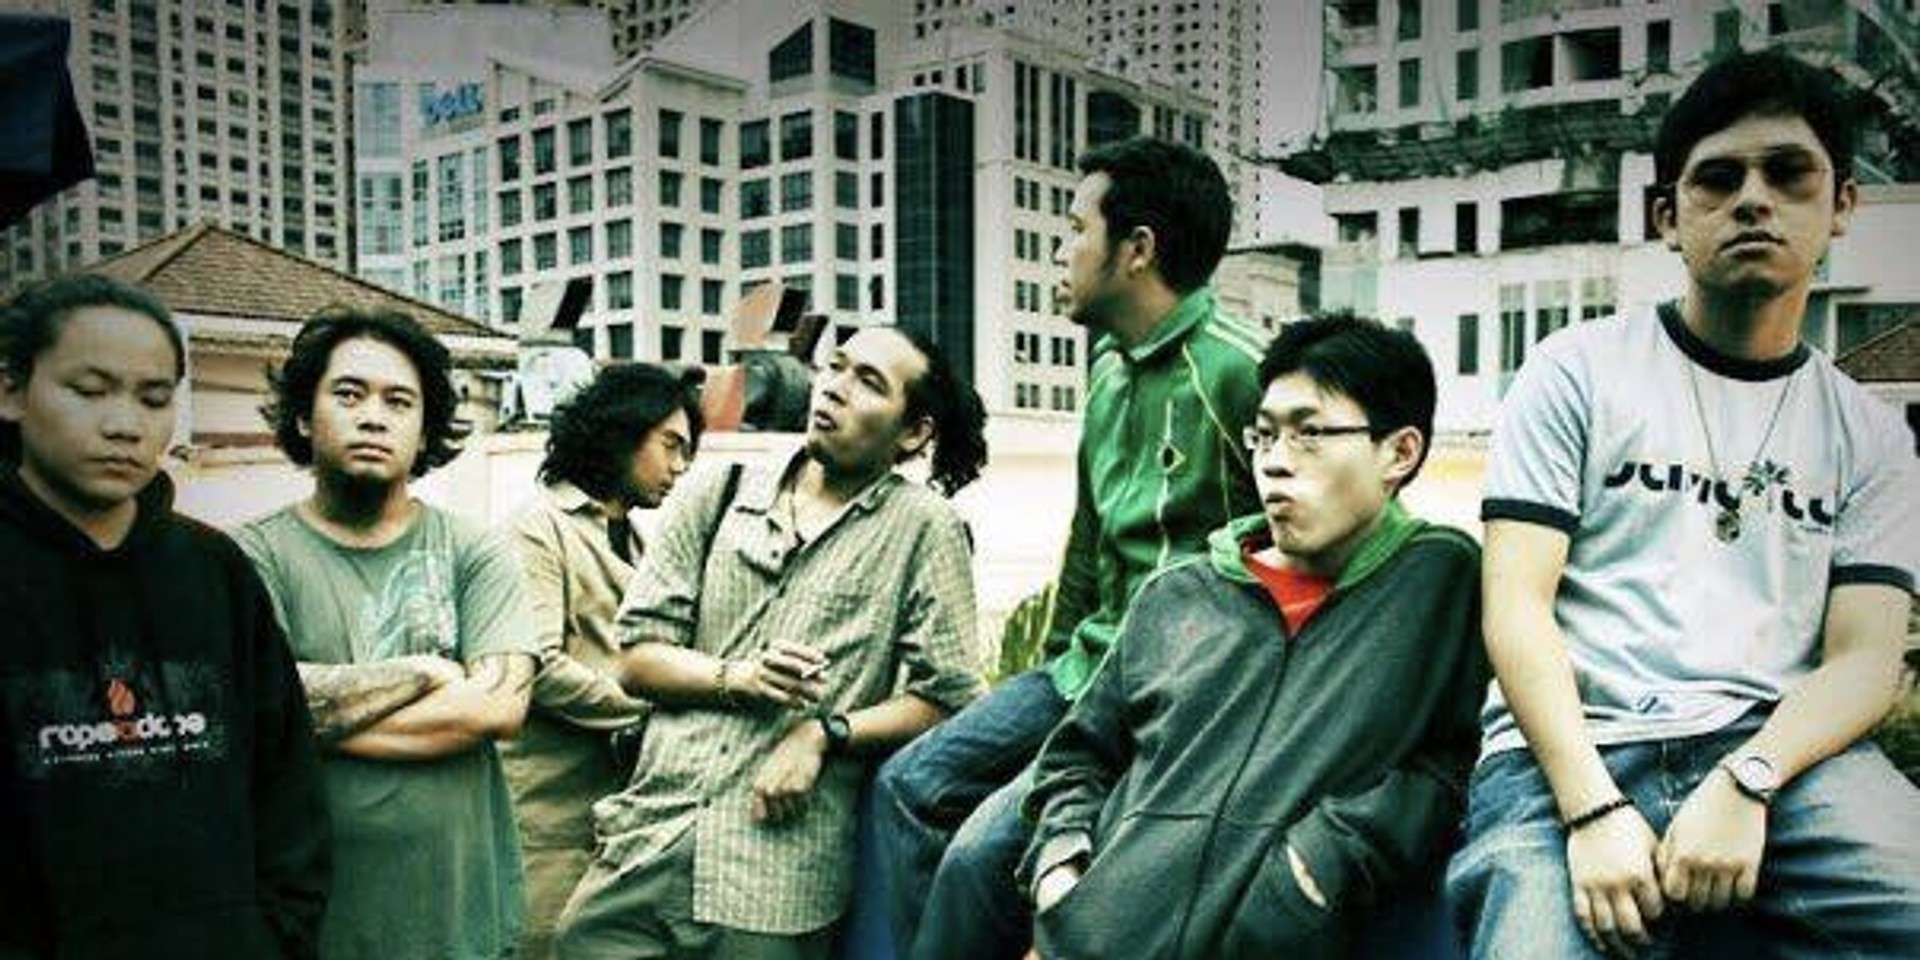 The Out of Body Special vocalist talks Is Love's tenth anniversary reunion